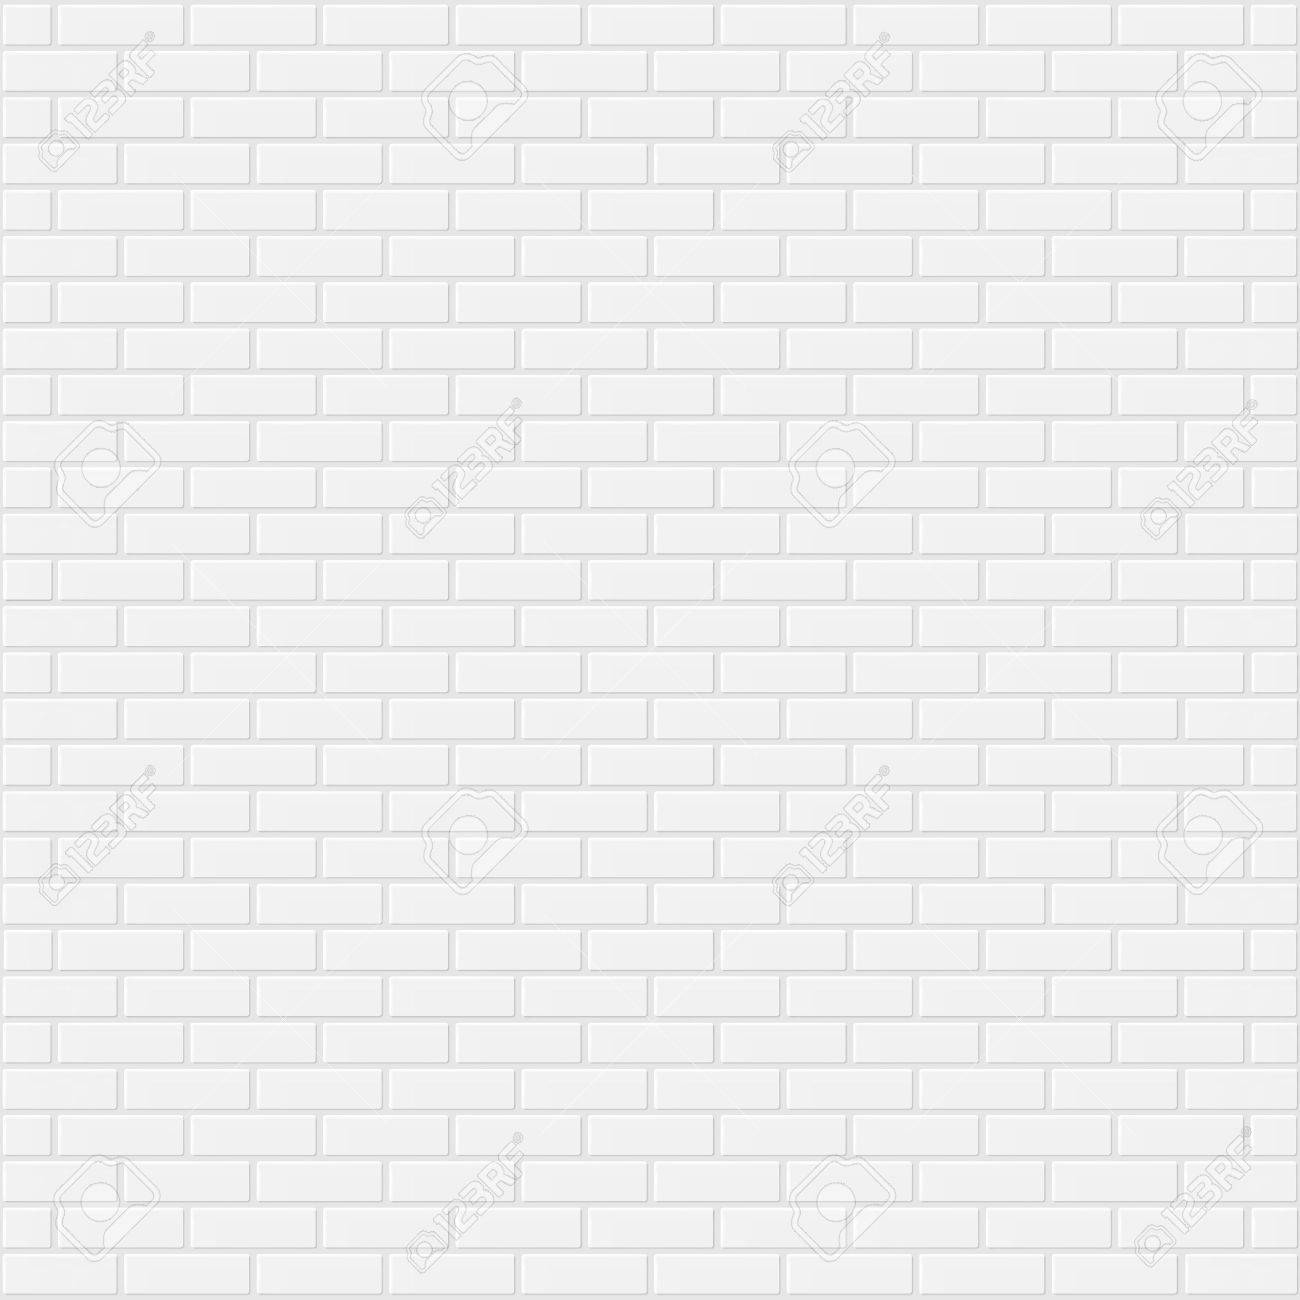 White brick wall realistic background vector illustration - 64947716